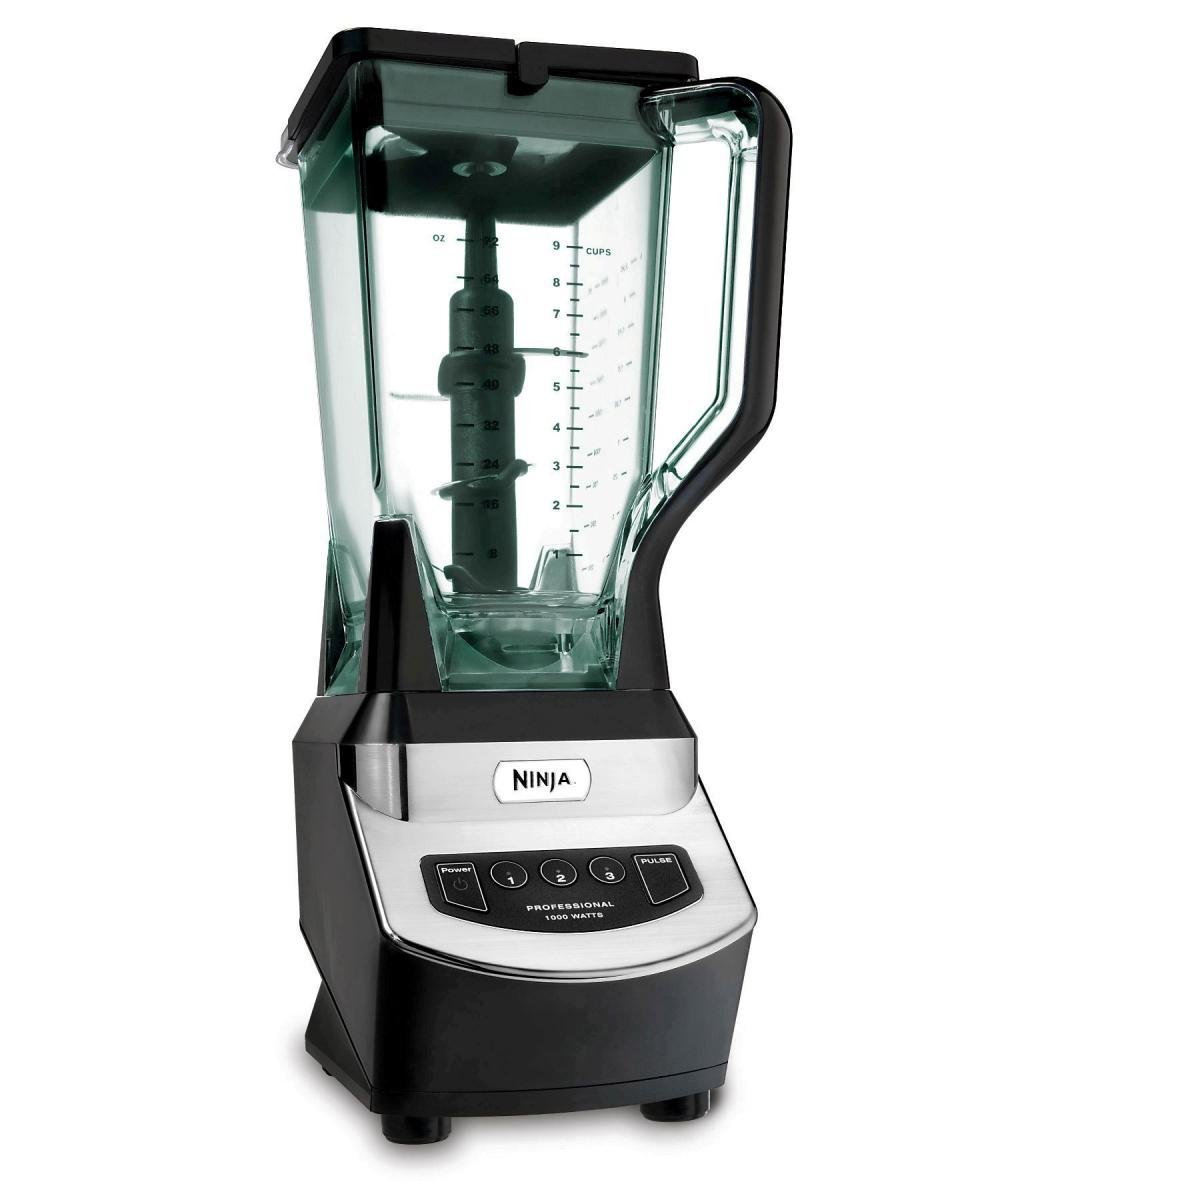 Ninja Blender Reviews